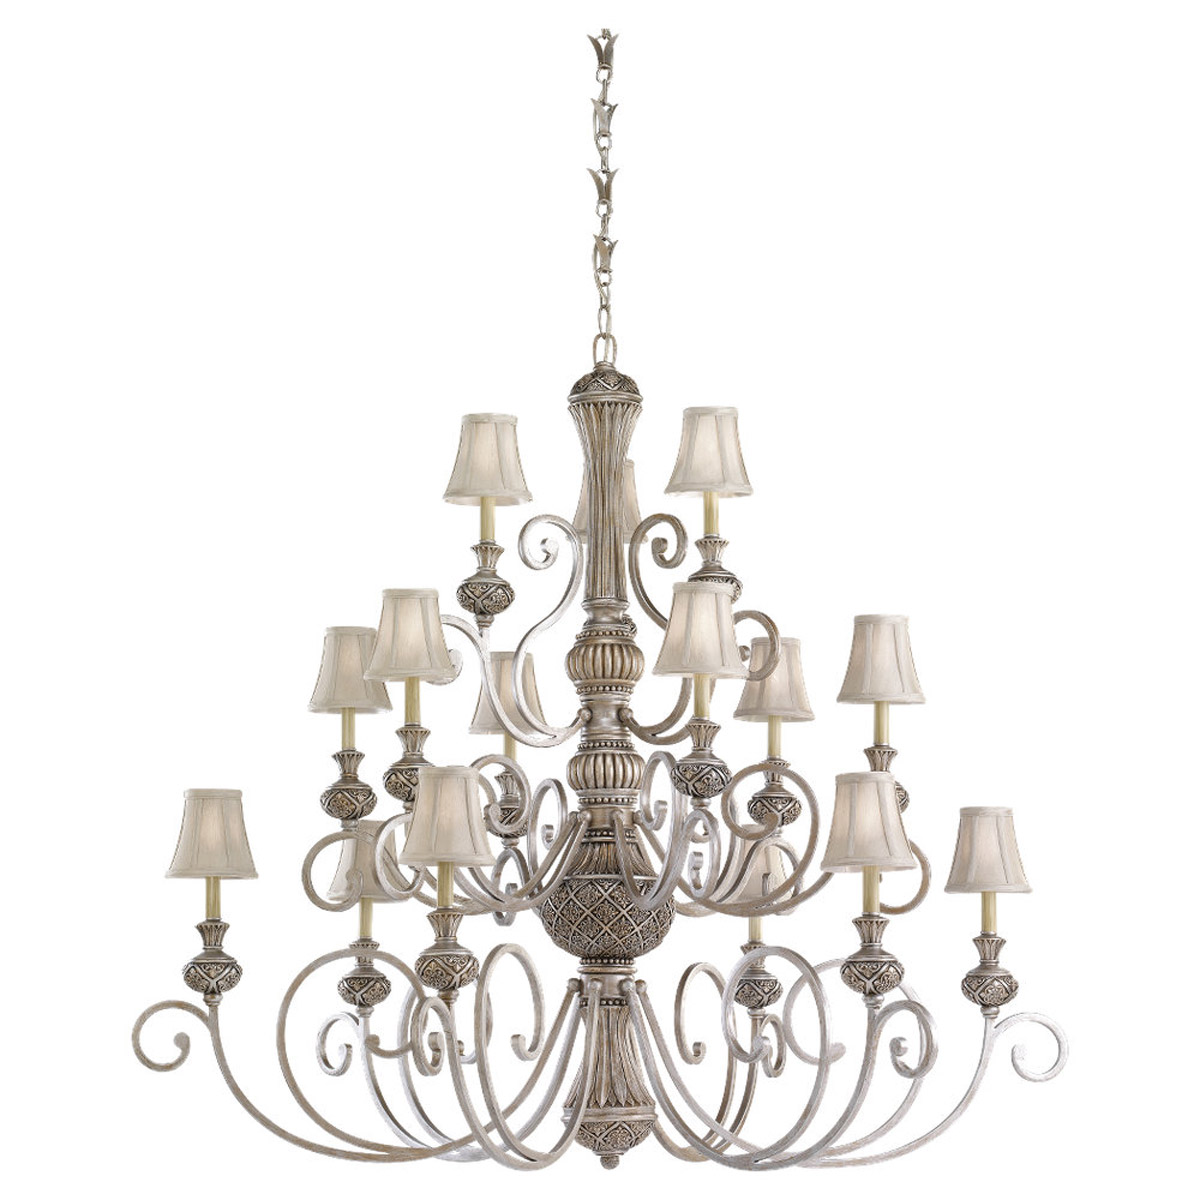 Sea Gull Lighting Highlands 15 Light Chandelier in Palladium 31253-824 photo